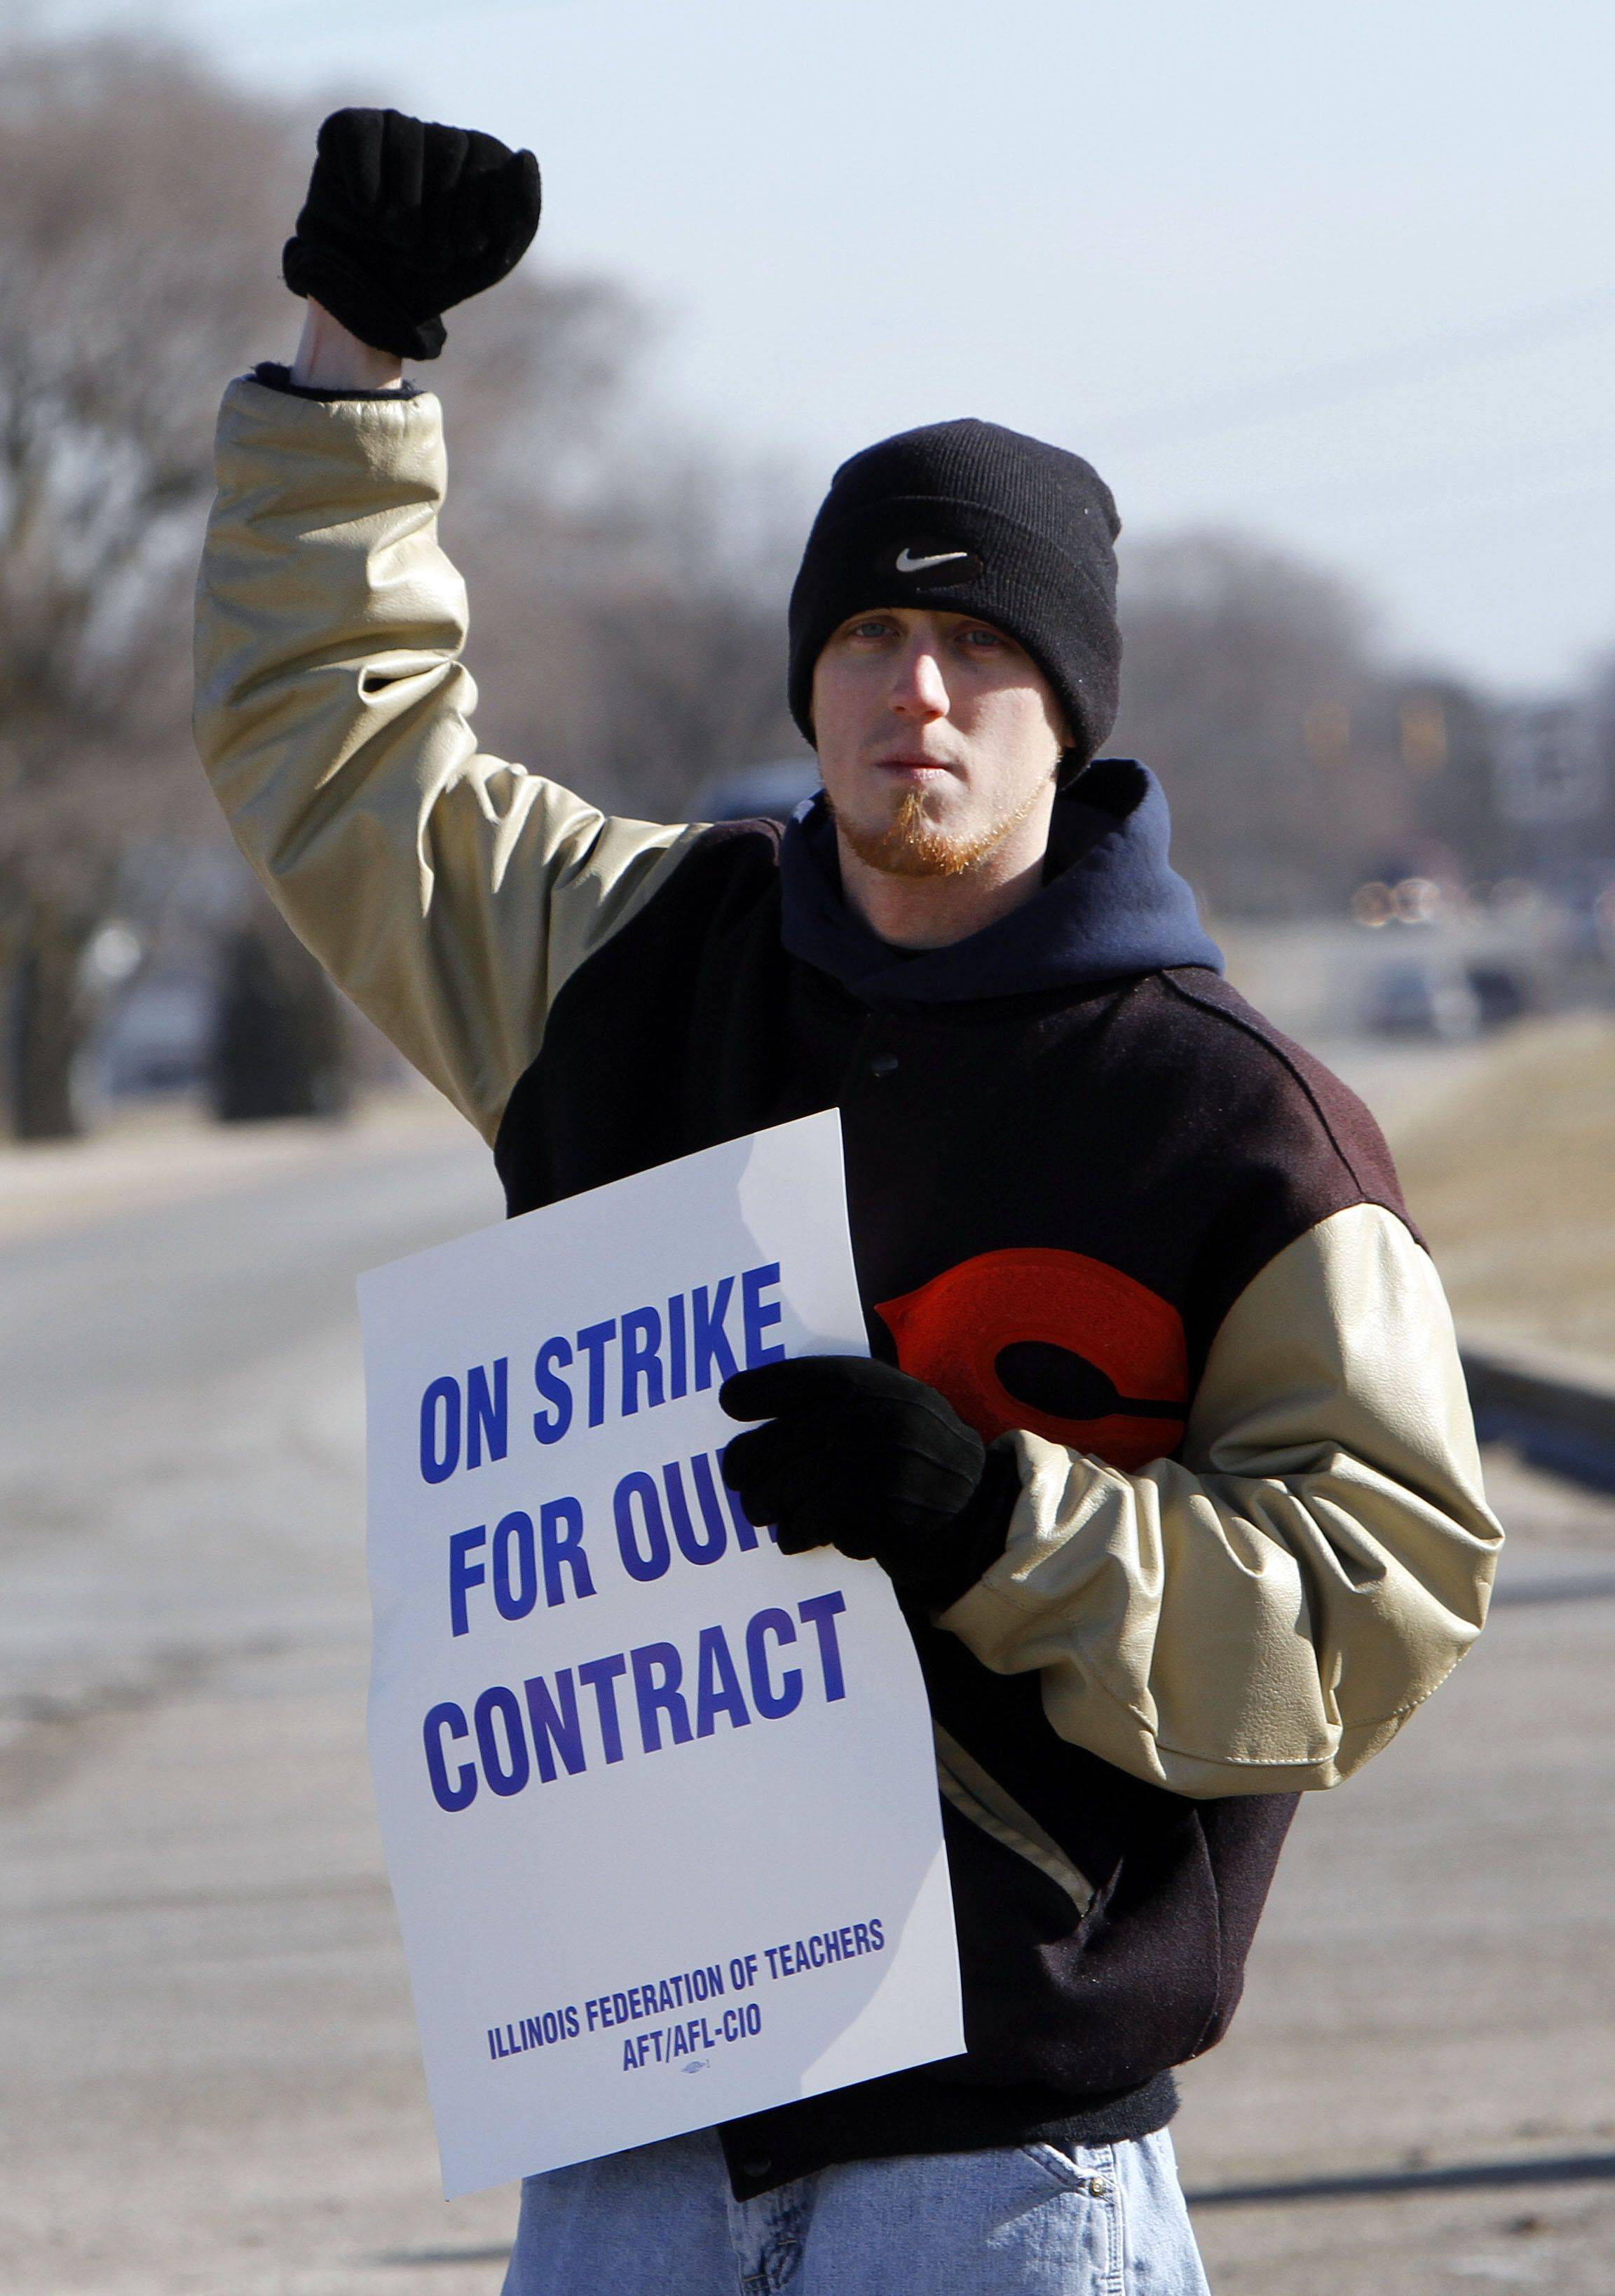 Zion-Benton Township High School social worker Jonathan Mahoney acknowledges honking motorists as employees picket in front of the high school Thursday.